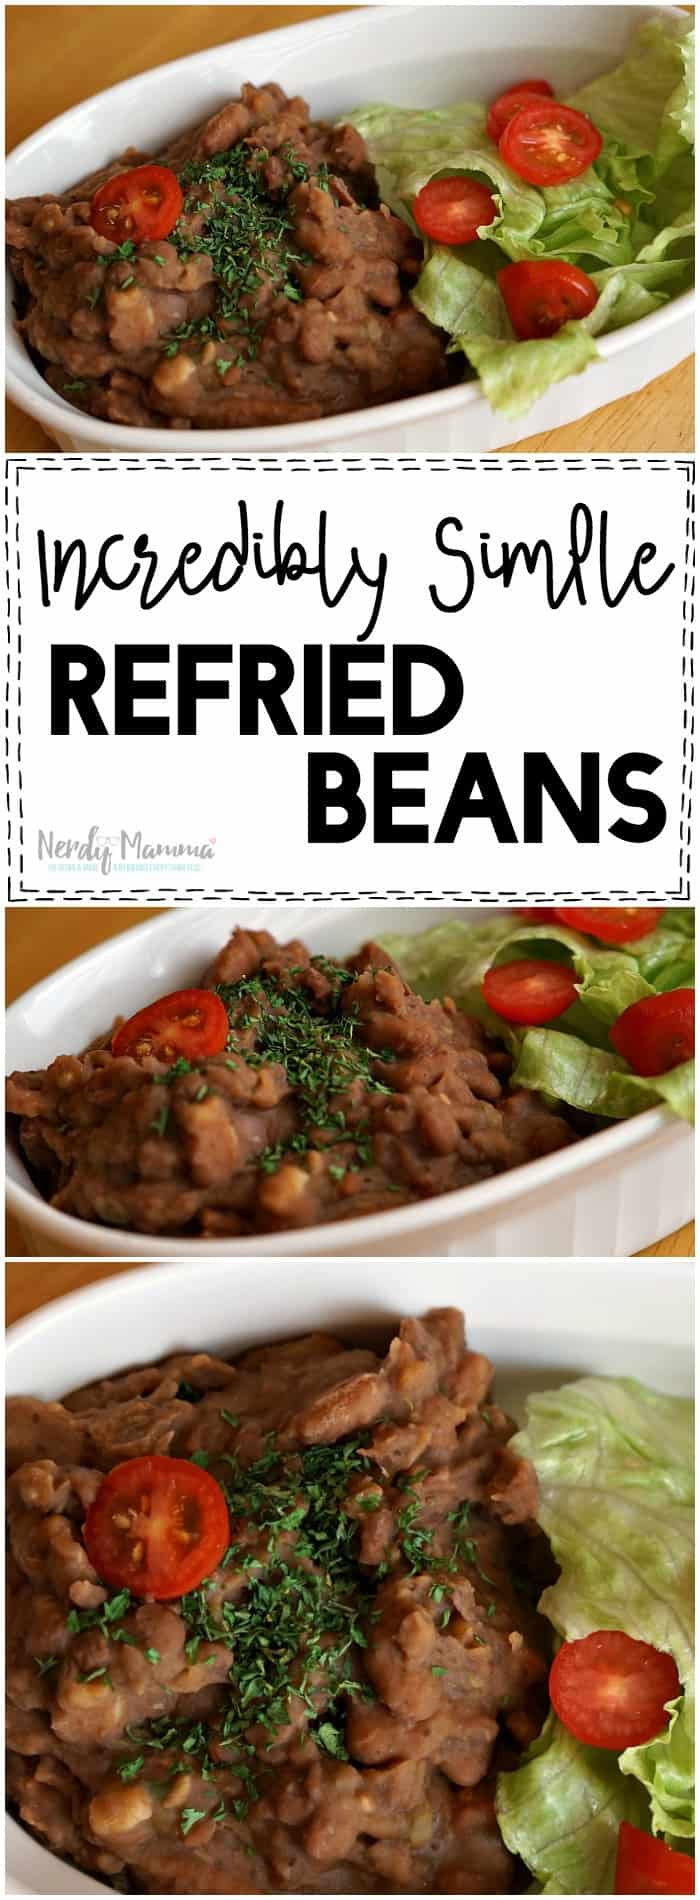 I LOVE this incredibly simple refried beans recipe. So easy. I had no idea.